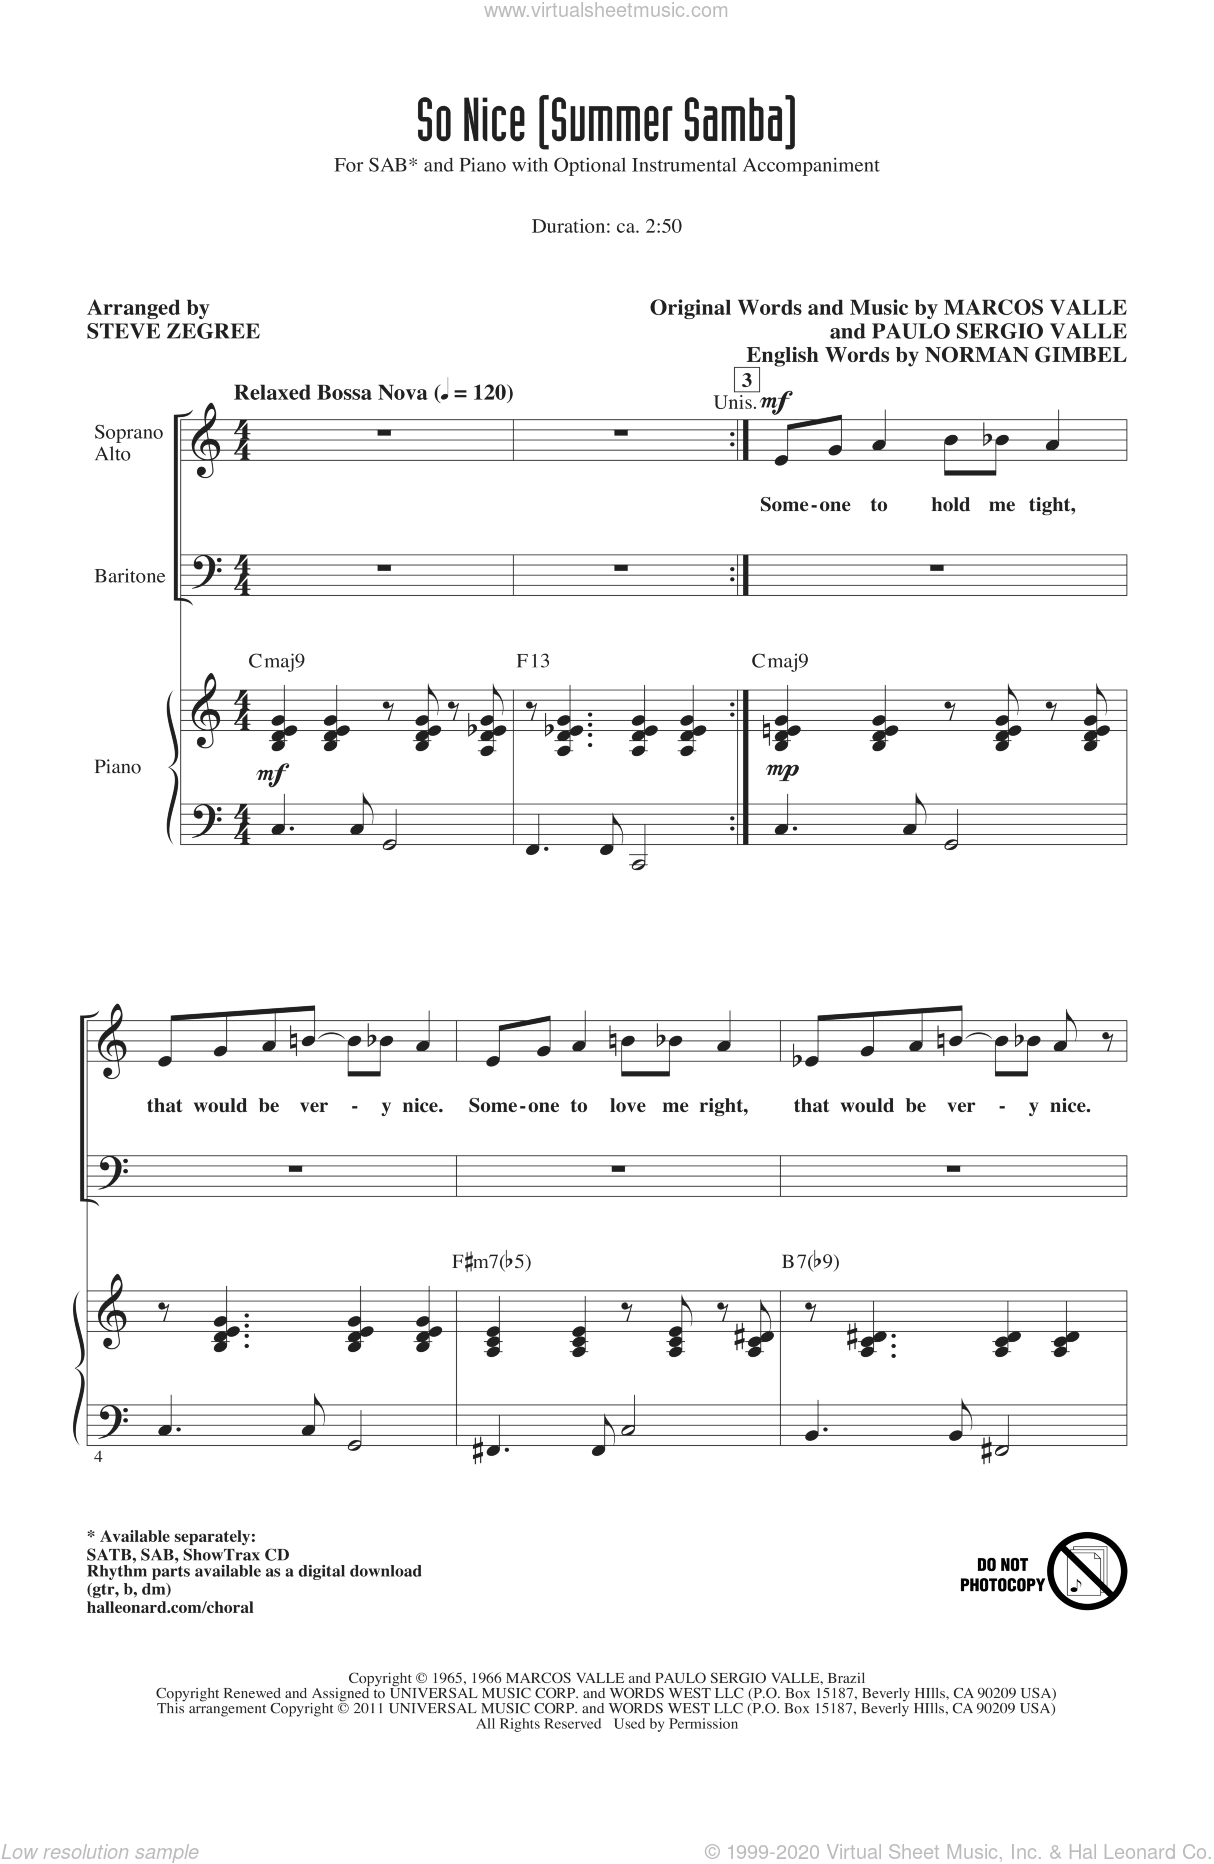 So Nice (Summer Samba) sheet music for choir (SAB) by Norman Gimbel, Marcos Valle, Paulo Sergio Valle, Walter Wanderley and Steve Zegree, intermediate choir (SAB). Score Image Preview.